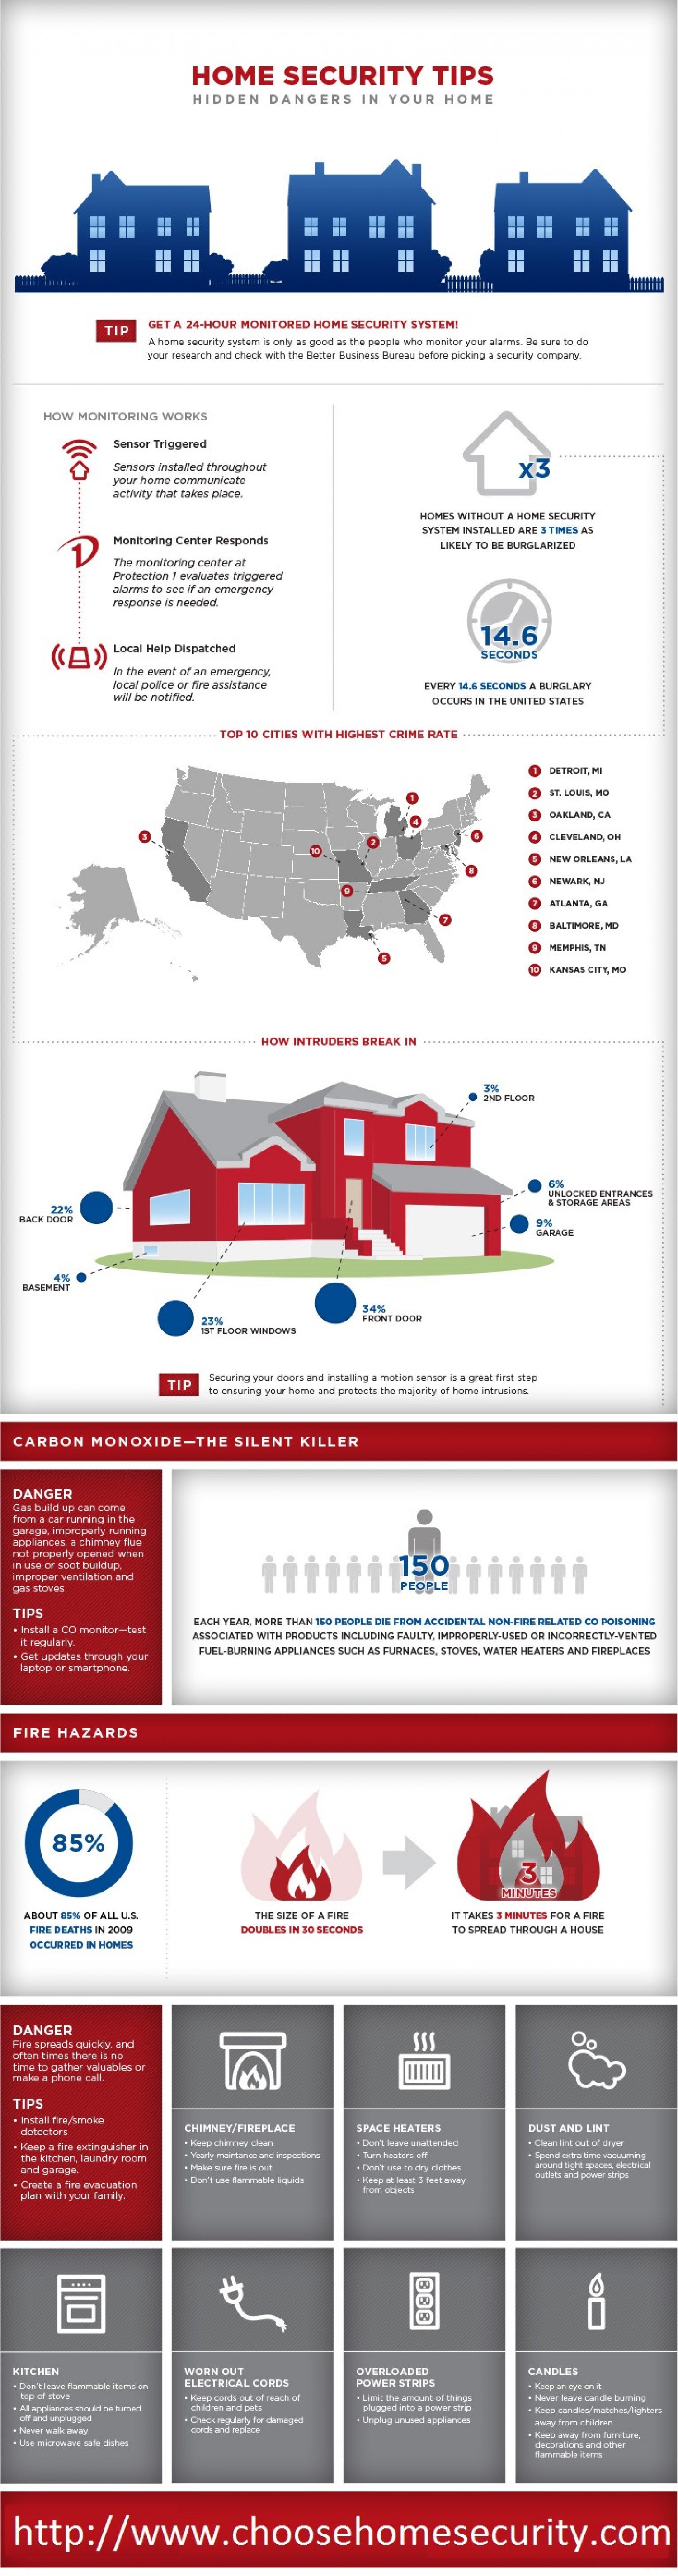 Home Security is 100% Possible Now Infographic